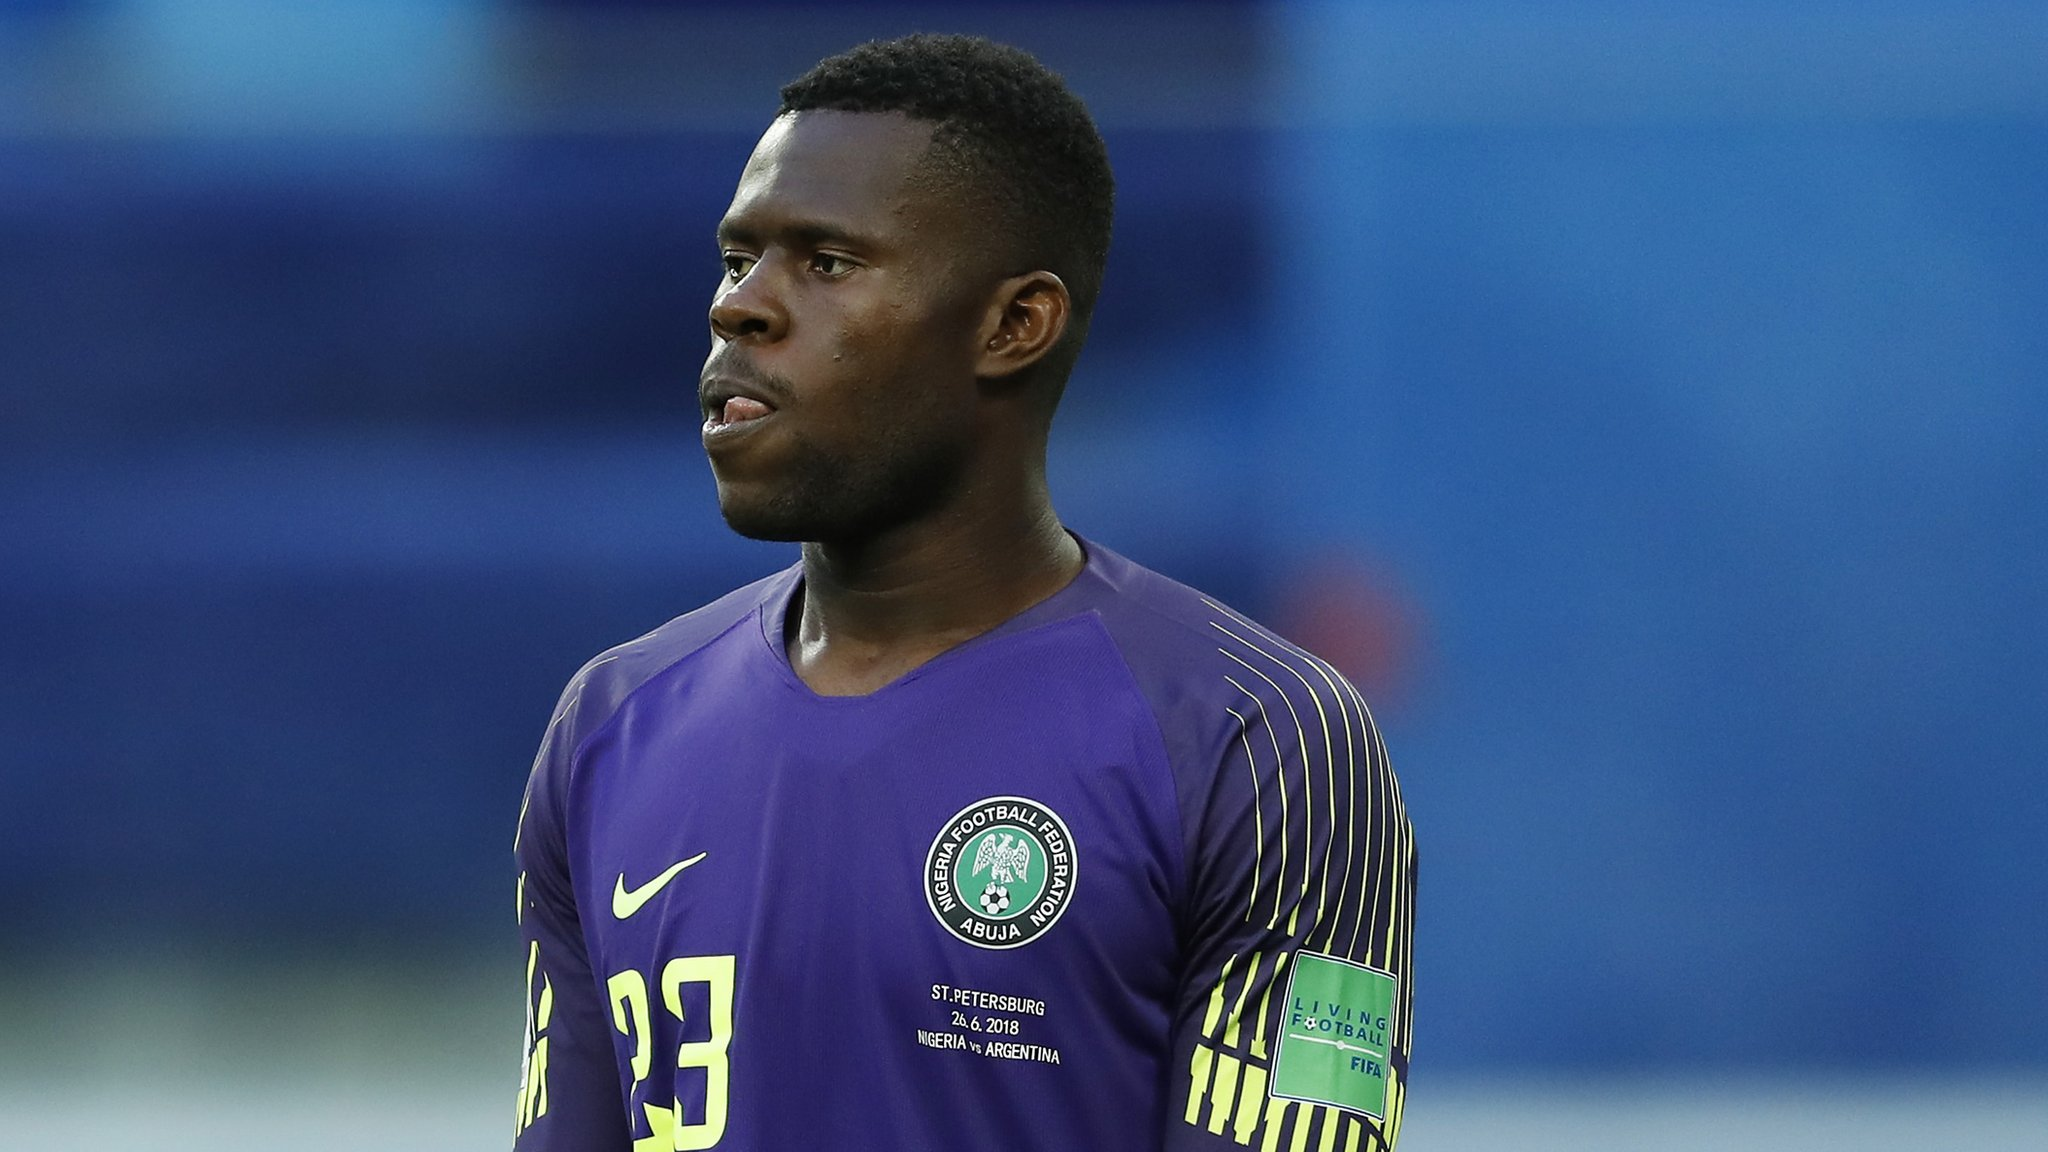 Francis Uzoho: Cypriot club Anorthosis to appeal points penalty